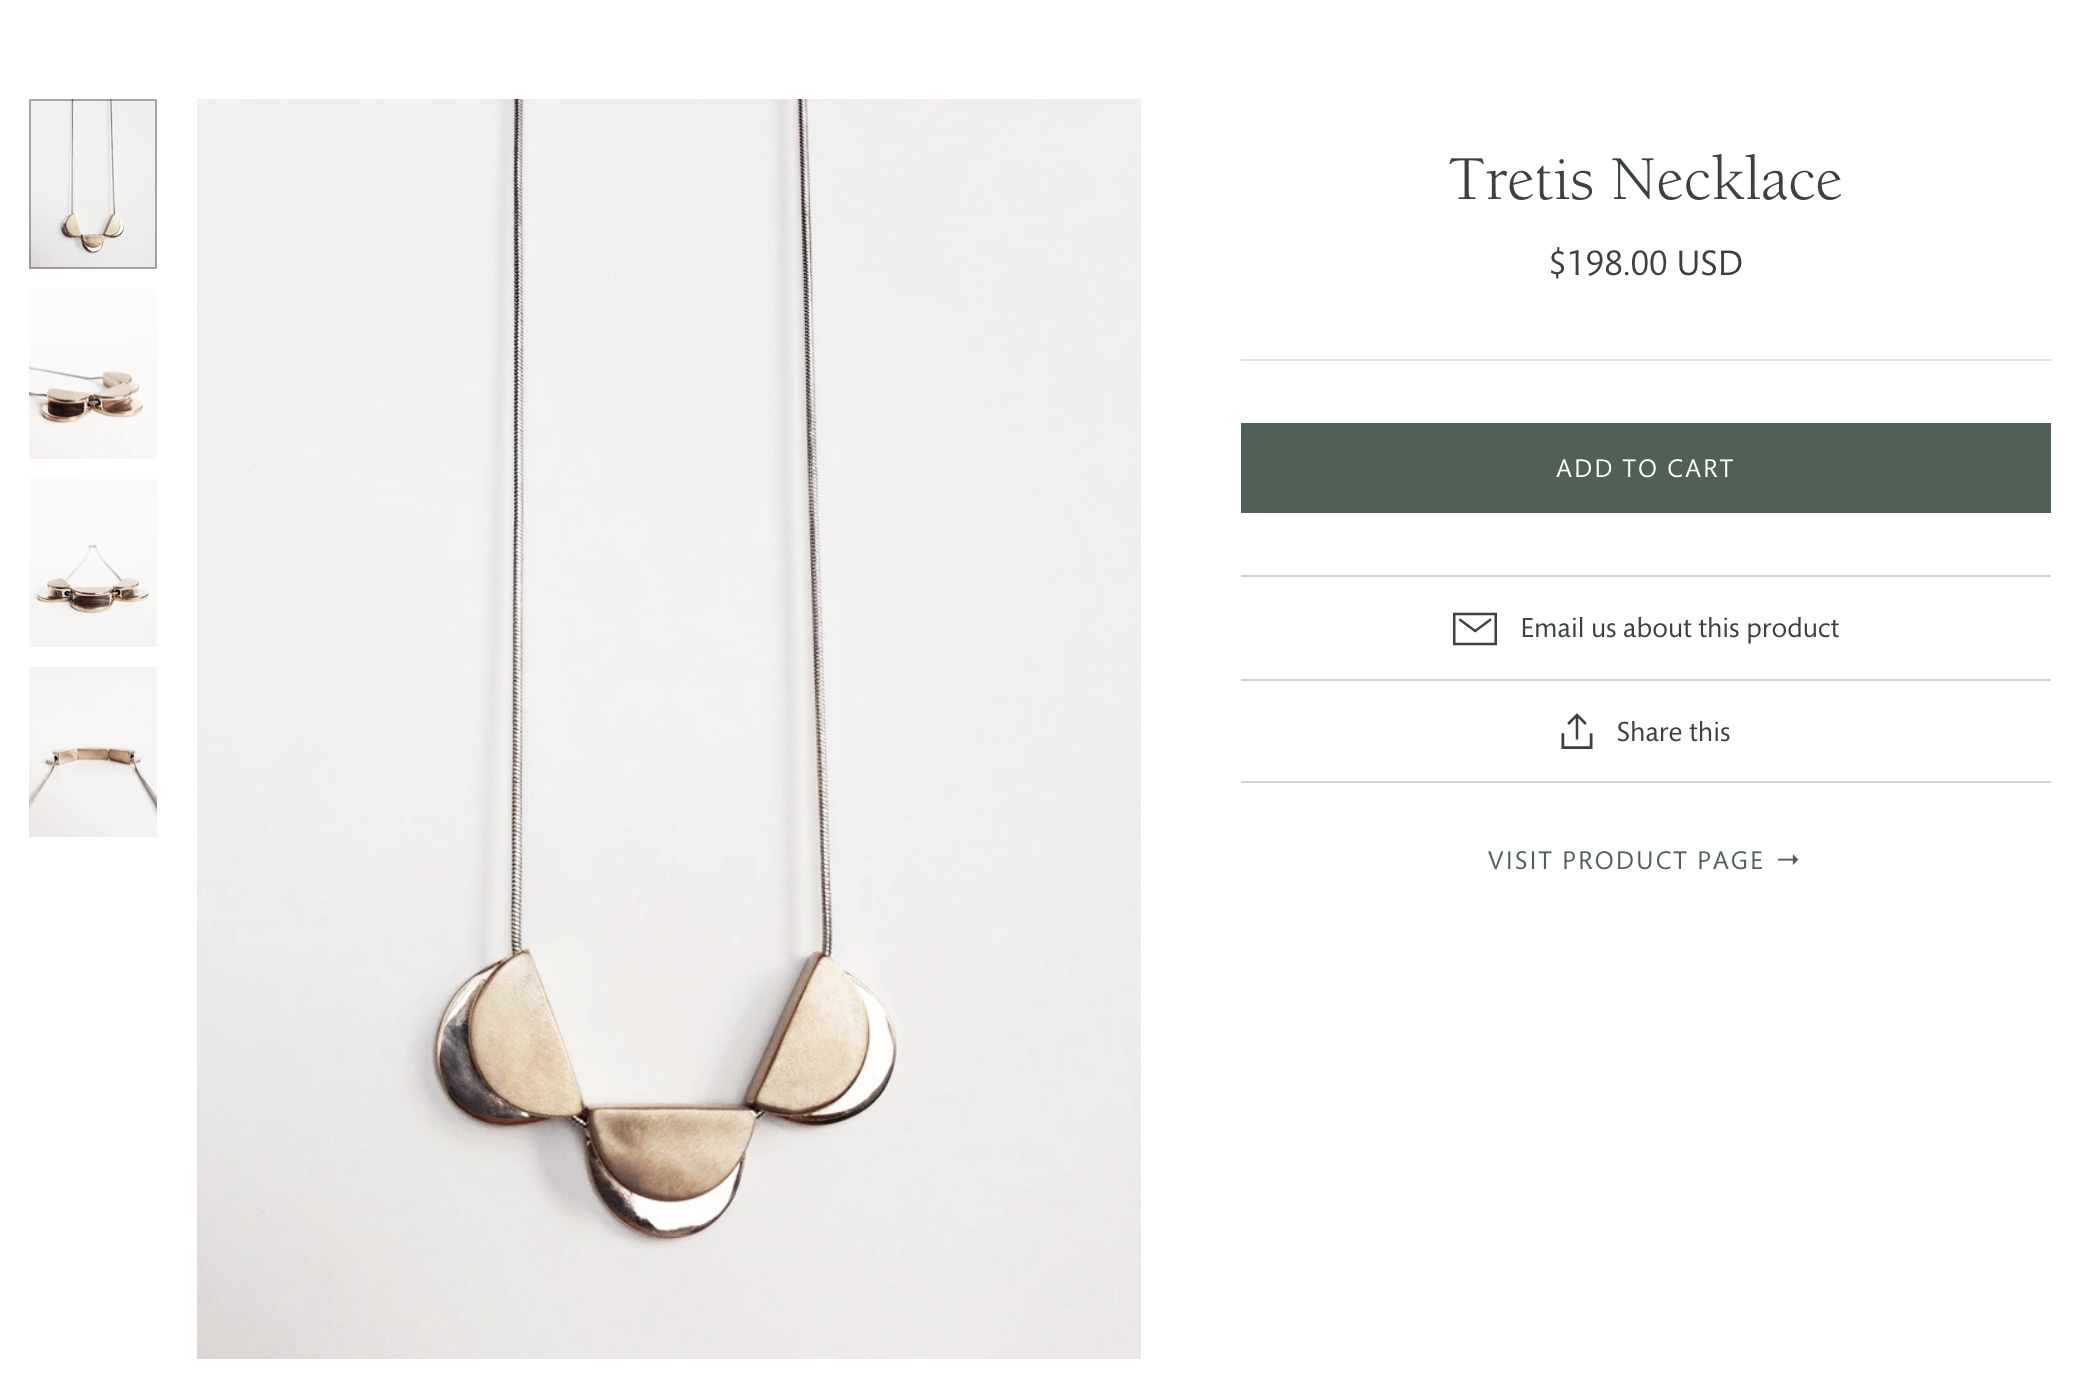 Featured_product_displaying_necklace_and_details.png